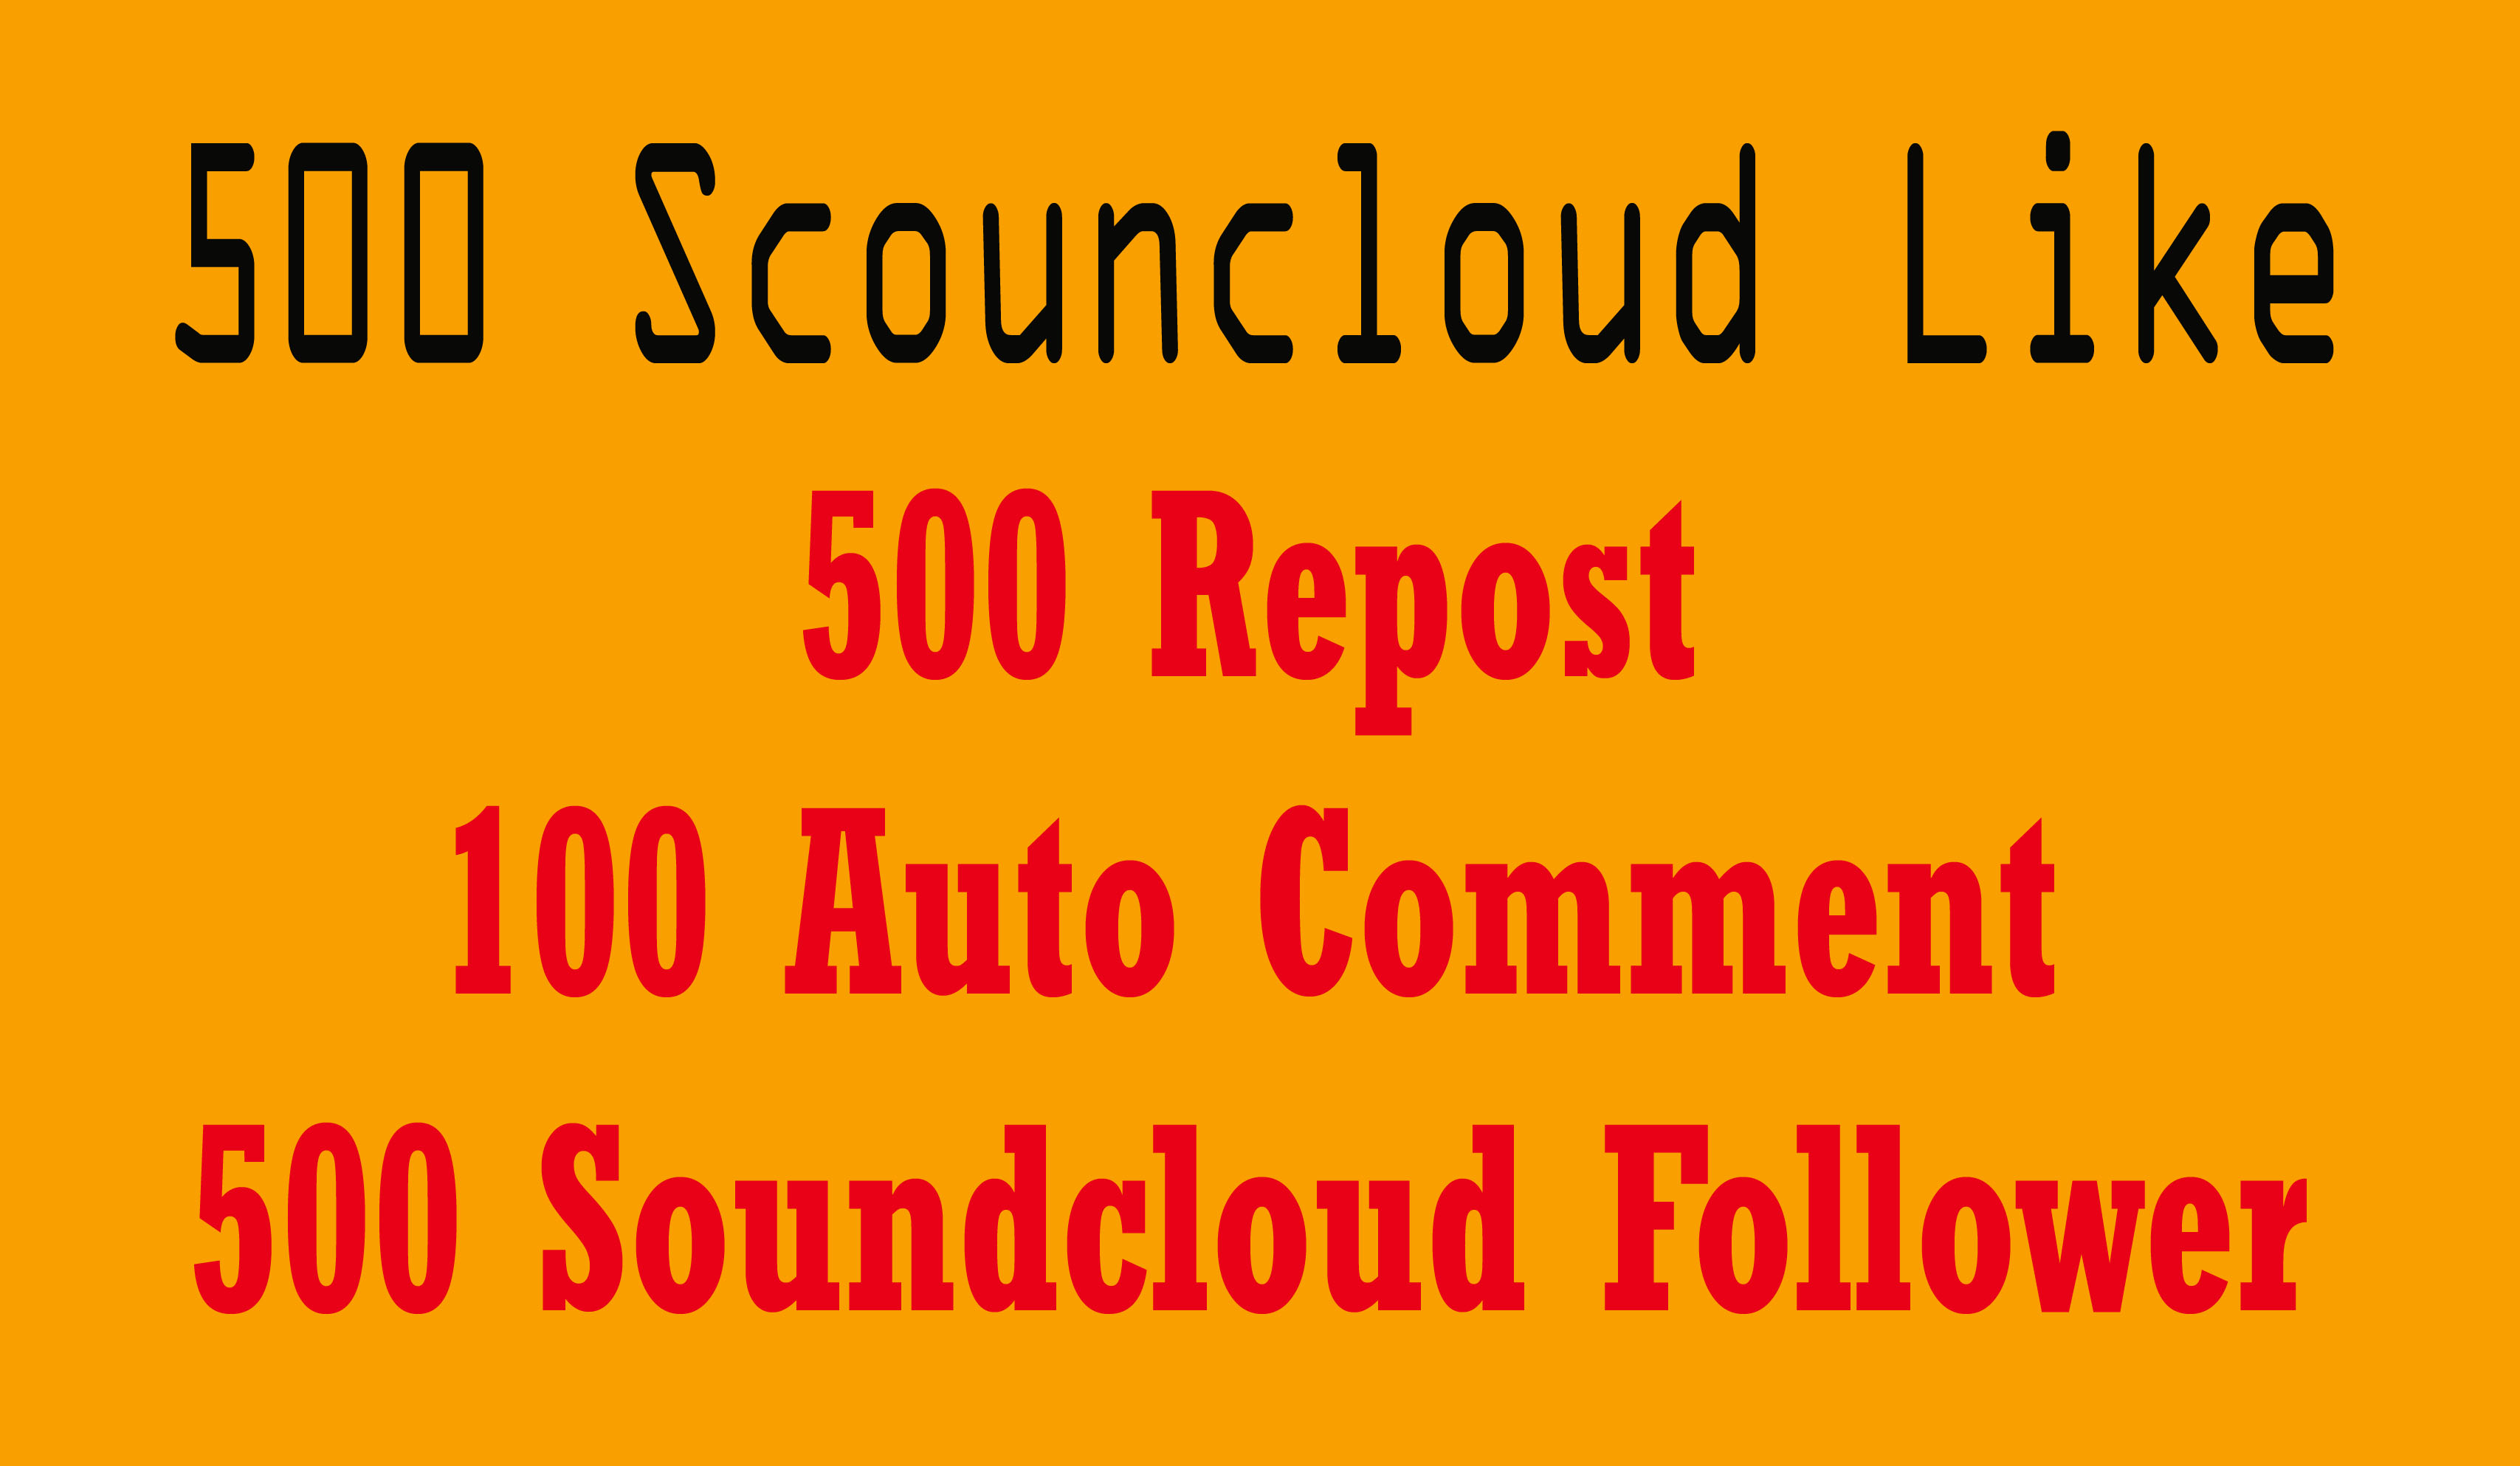 Soundcloud 500 Like Or 500 Repost Or 200 HQ Custom Comments Or 500 Followers